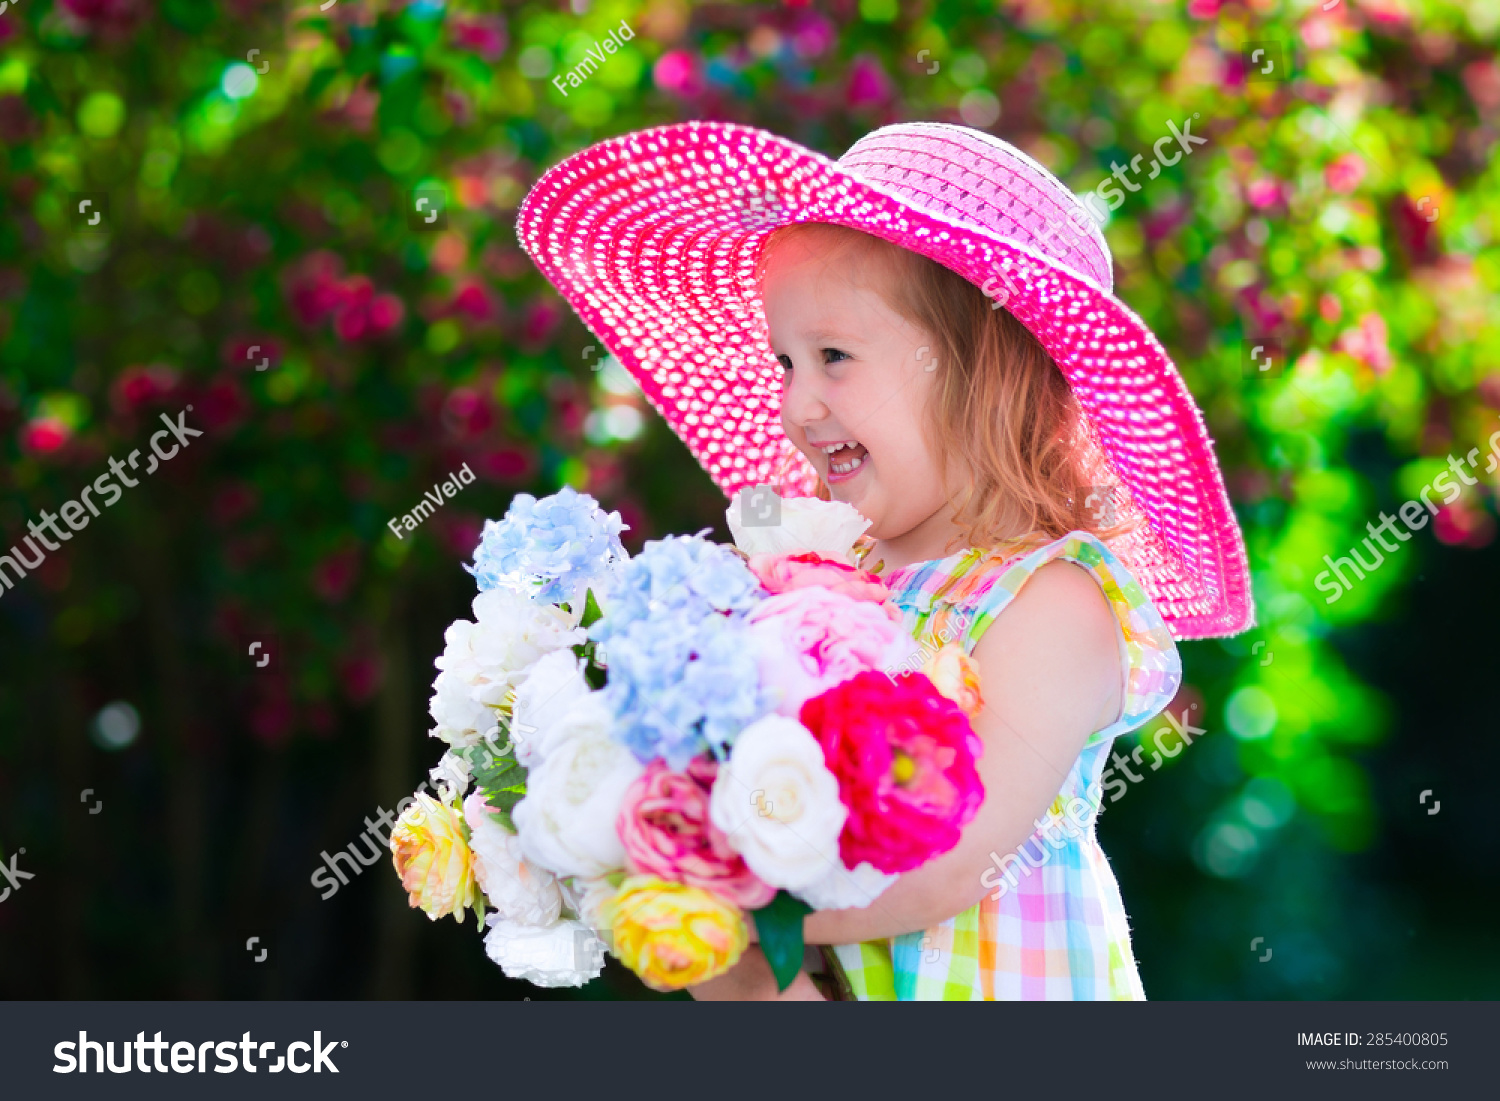 Royalty Free Little Cute Girl With Flowers Child 285400805 Stock